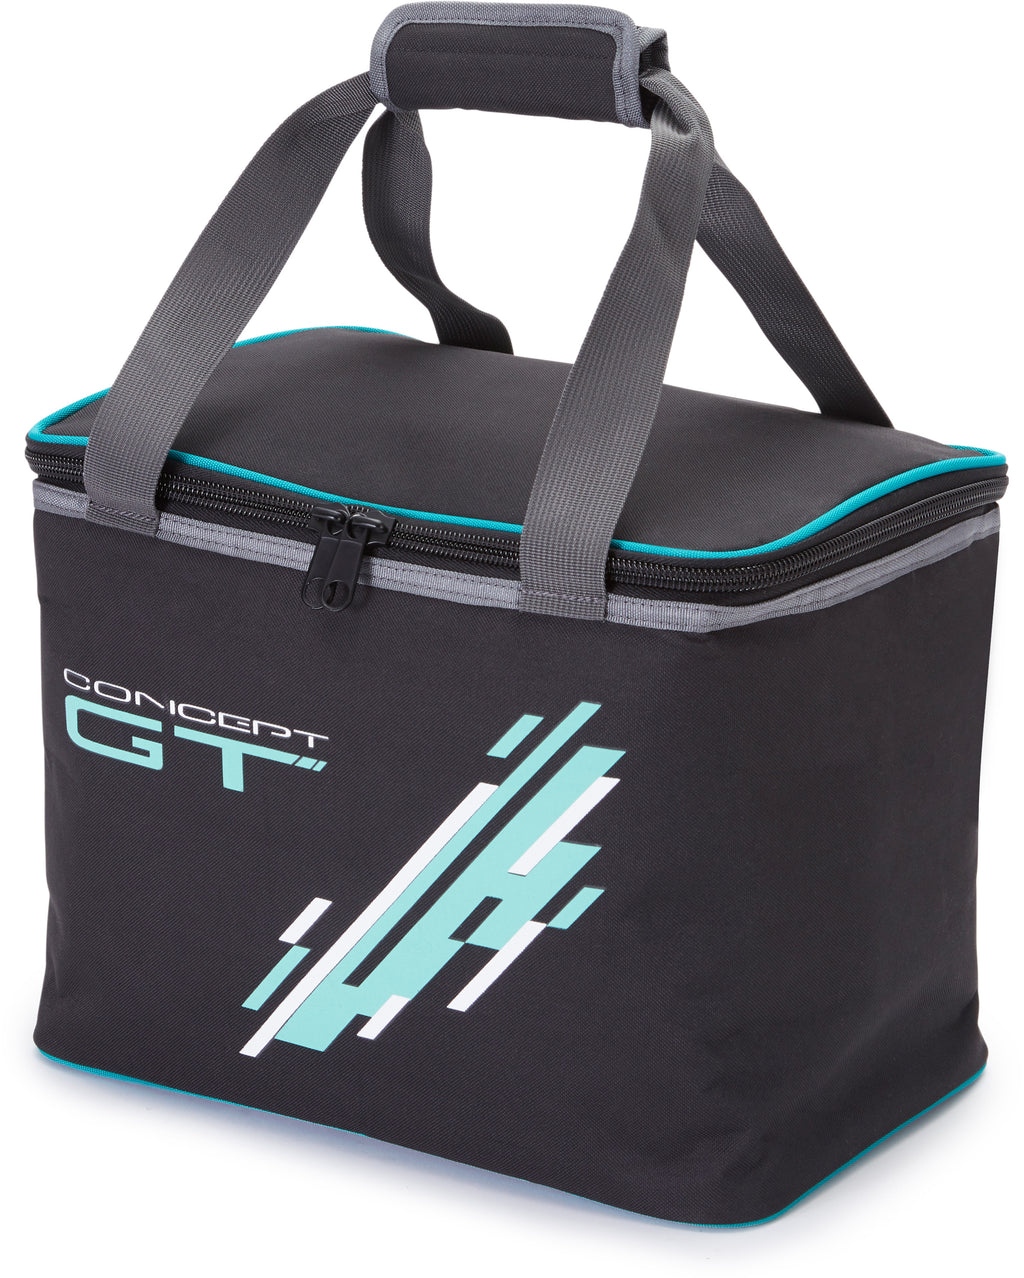 Leeda Concept GT Cool Bag great design and easy to carry OpenSeason.ie